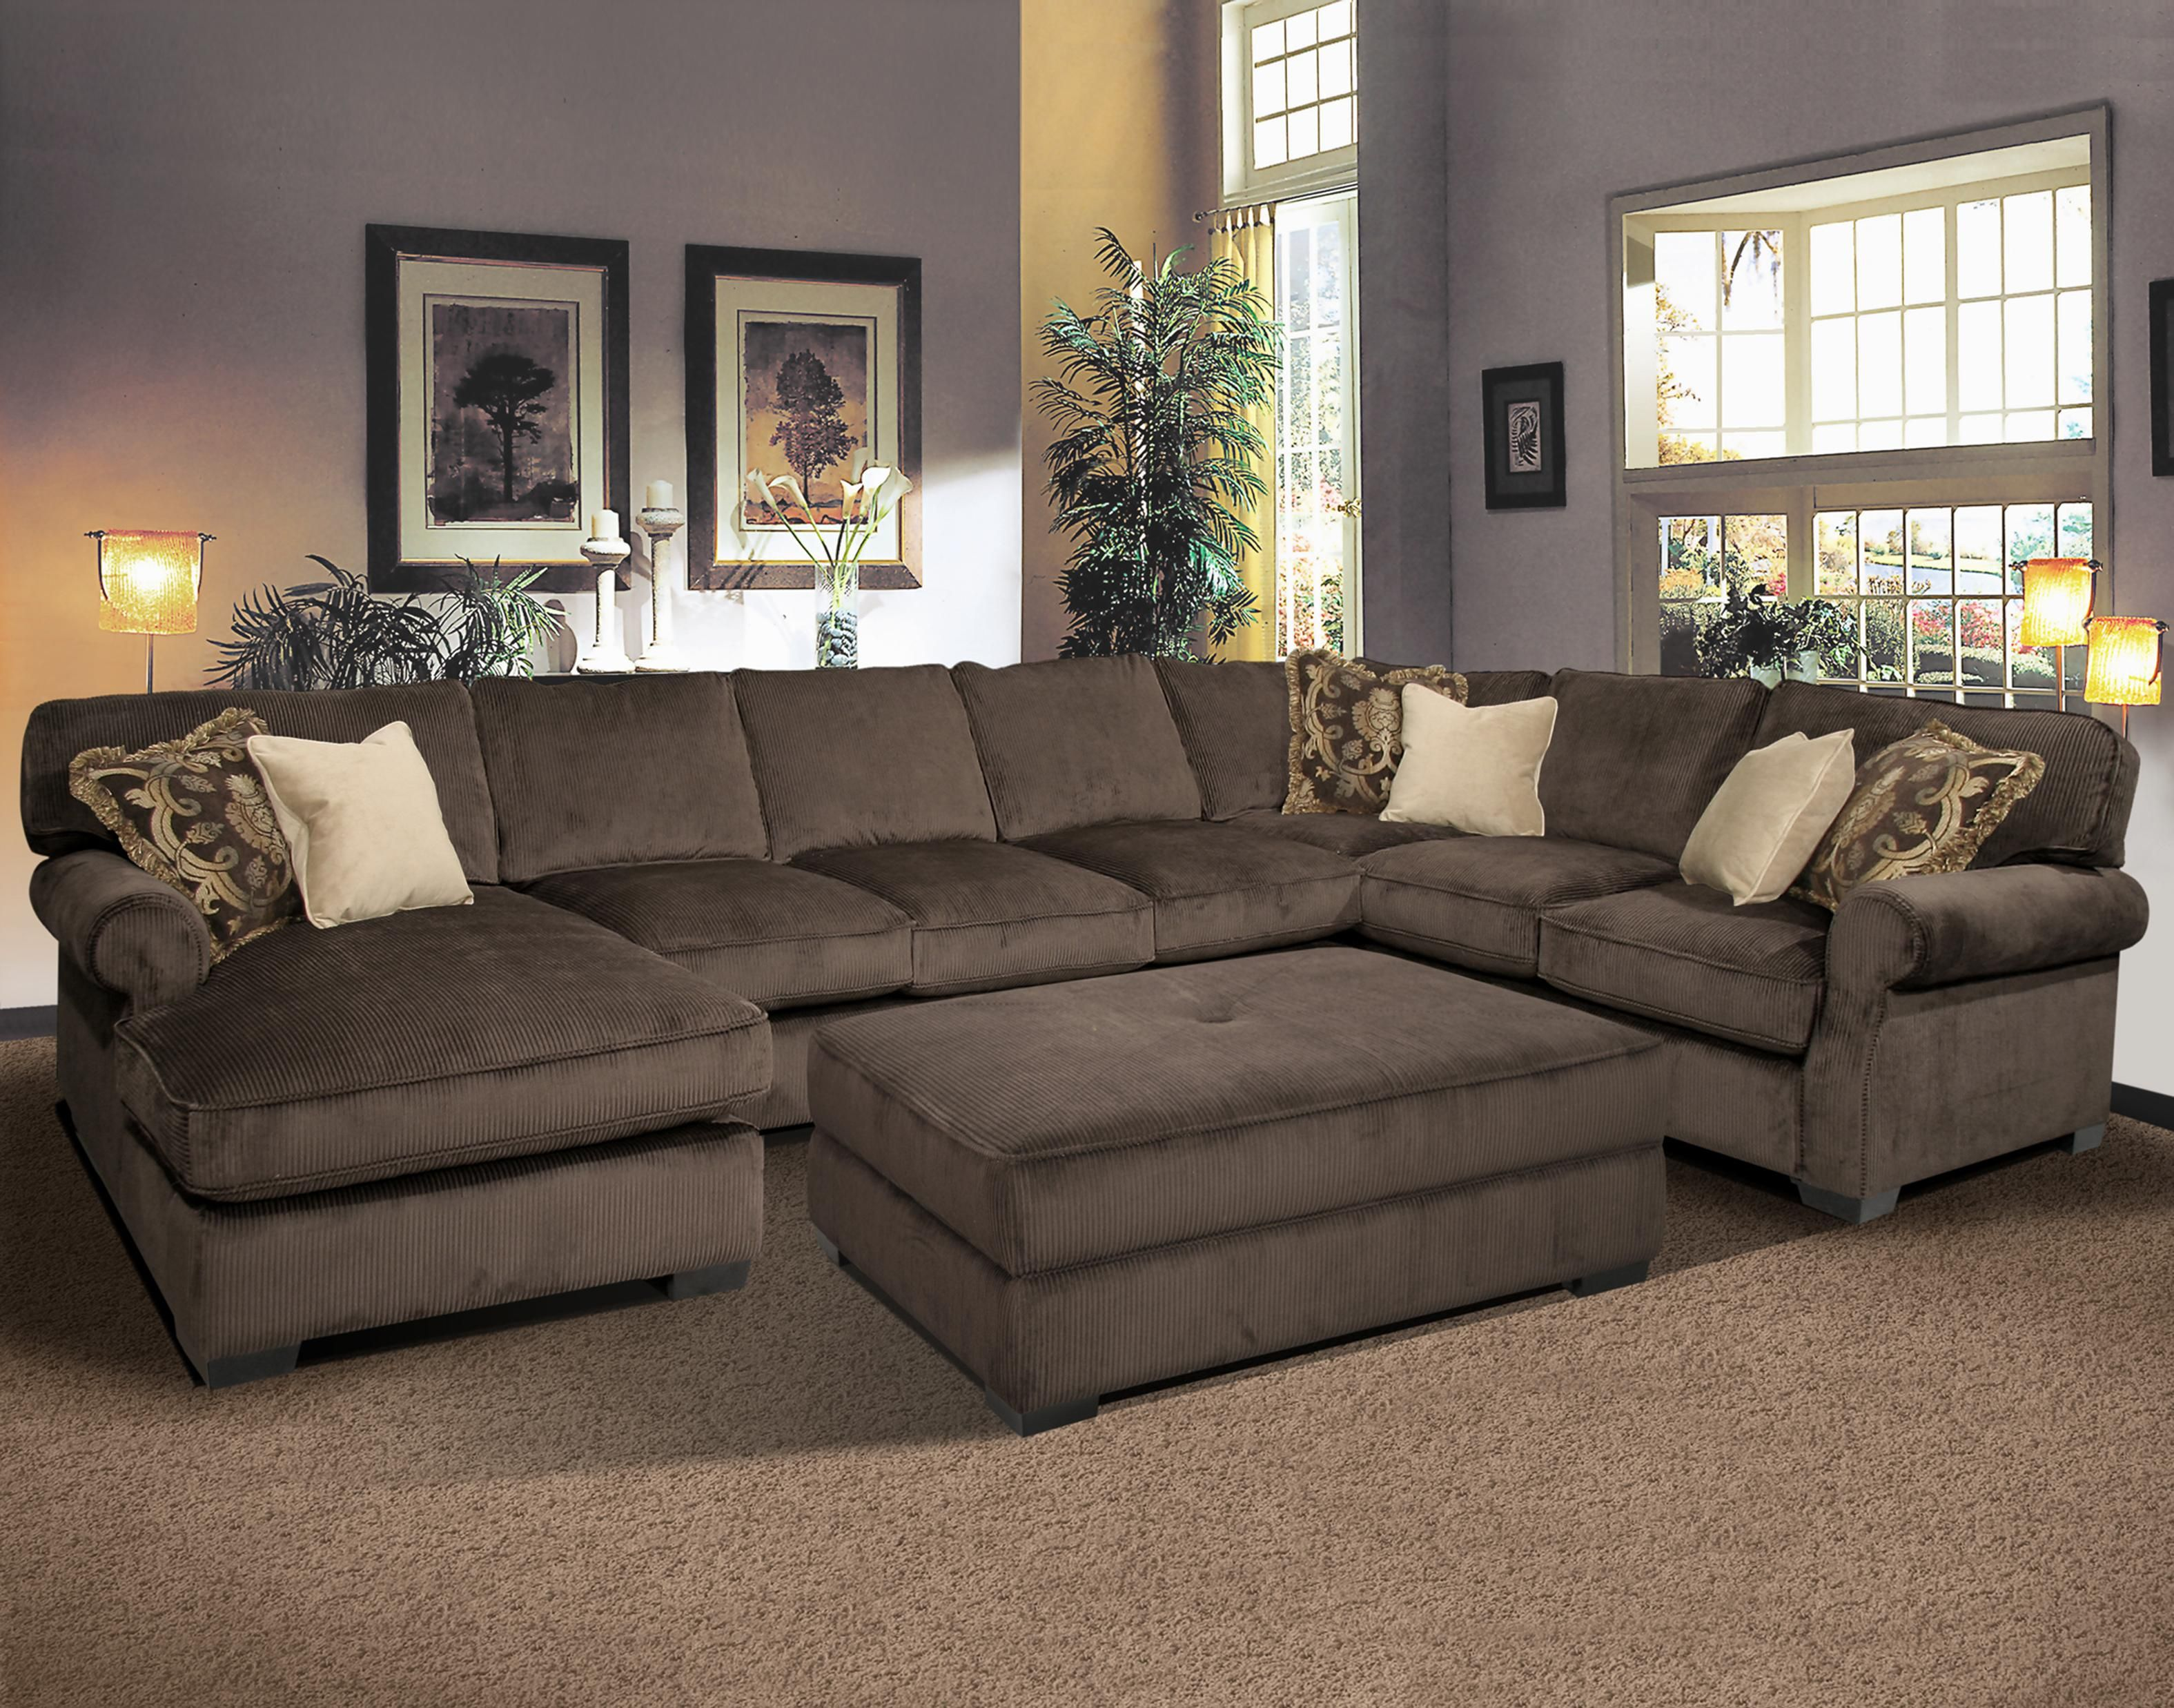 Awesome Wrap Around Couch Epic Wrap Around Couch 63 On Sofa Room Ideas With Wrap Around Couch Http Sofas Home Sectional Sofa With Chaise Home Furnishings